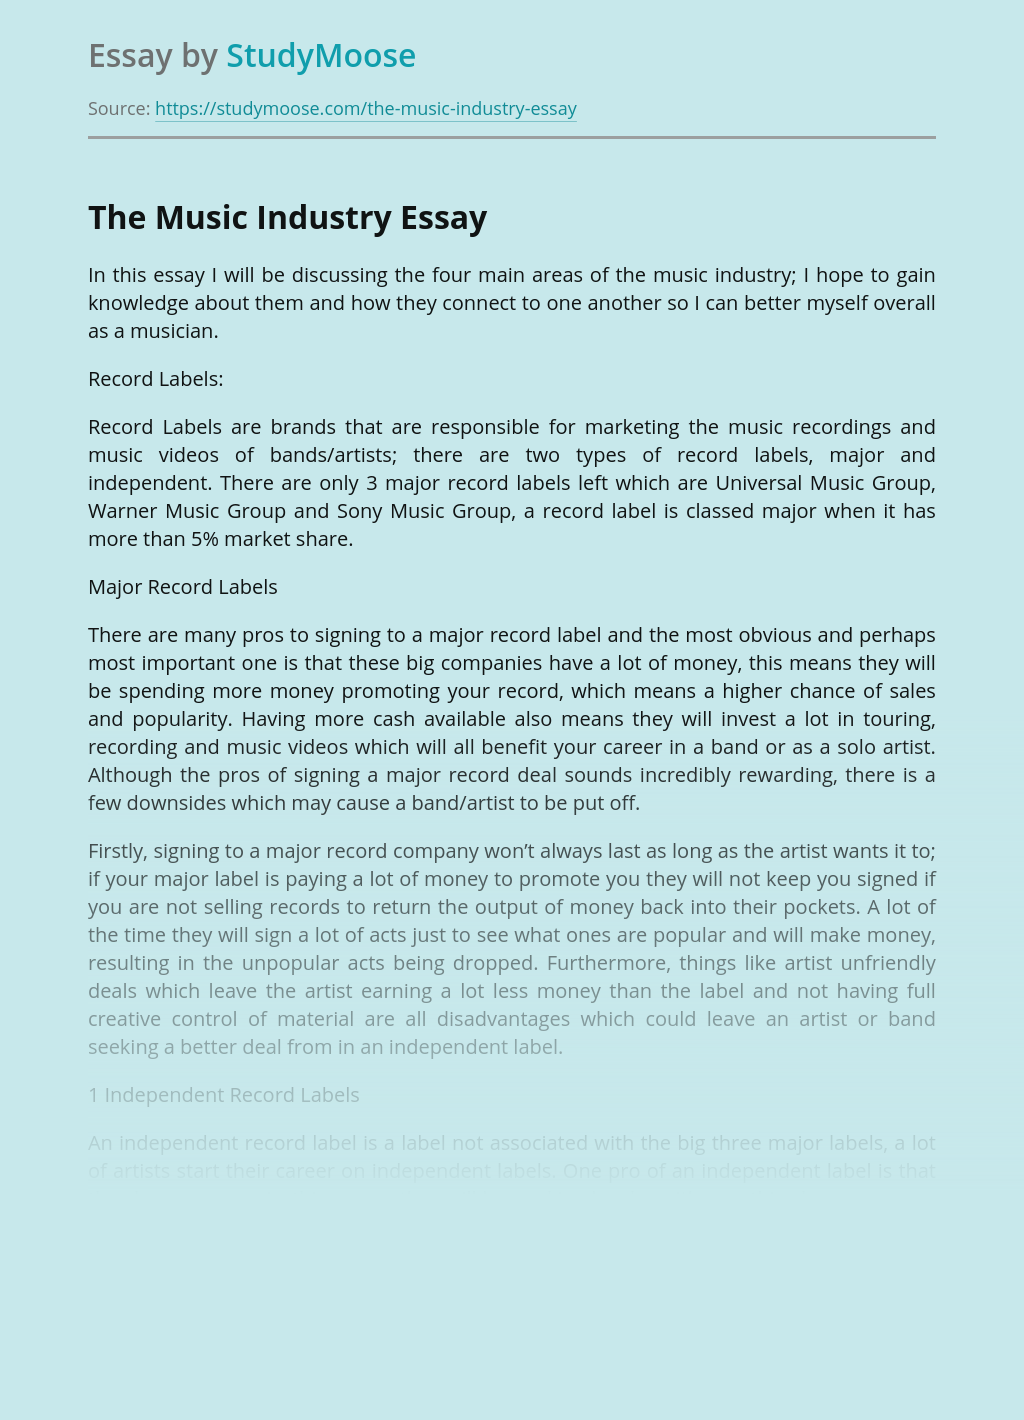 The Music Industry